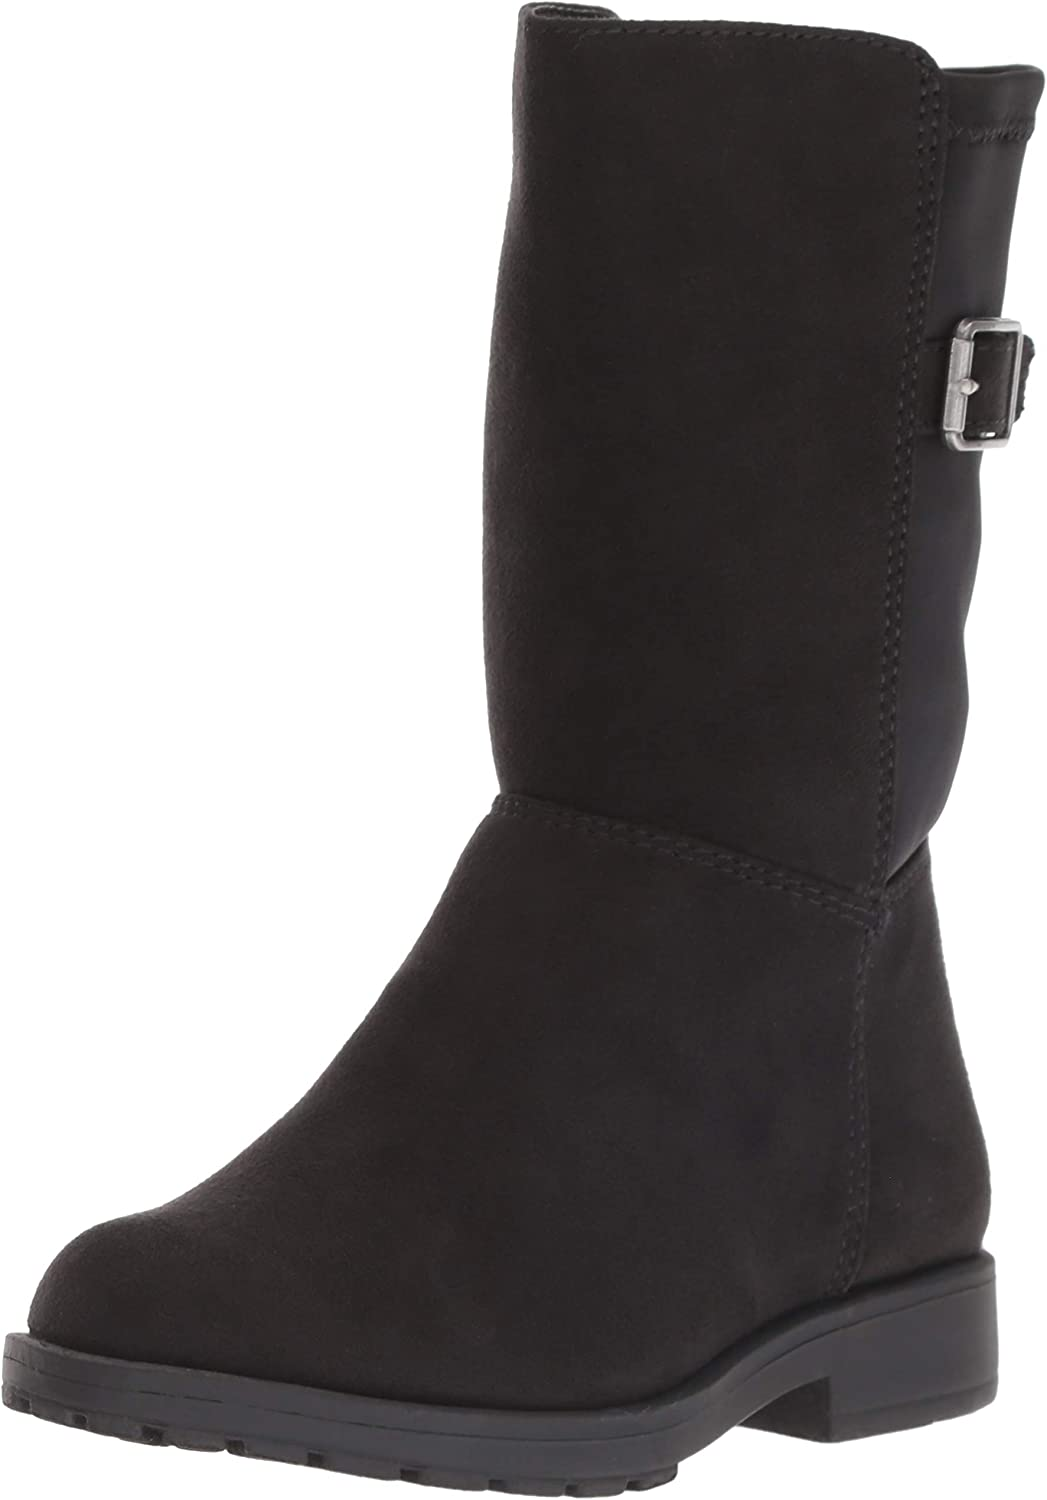 Stride Rite Baby-Girl's Willow Riding Boot Lightweight Popular brand in the world Fashion Max 65% OFF